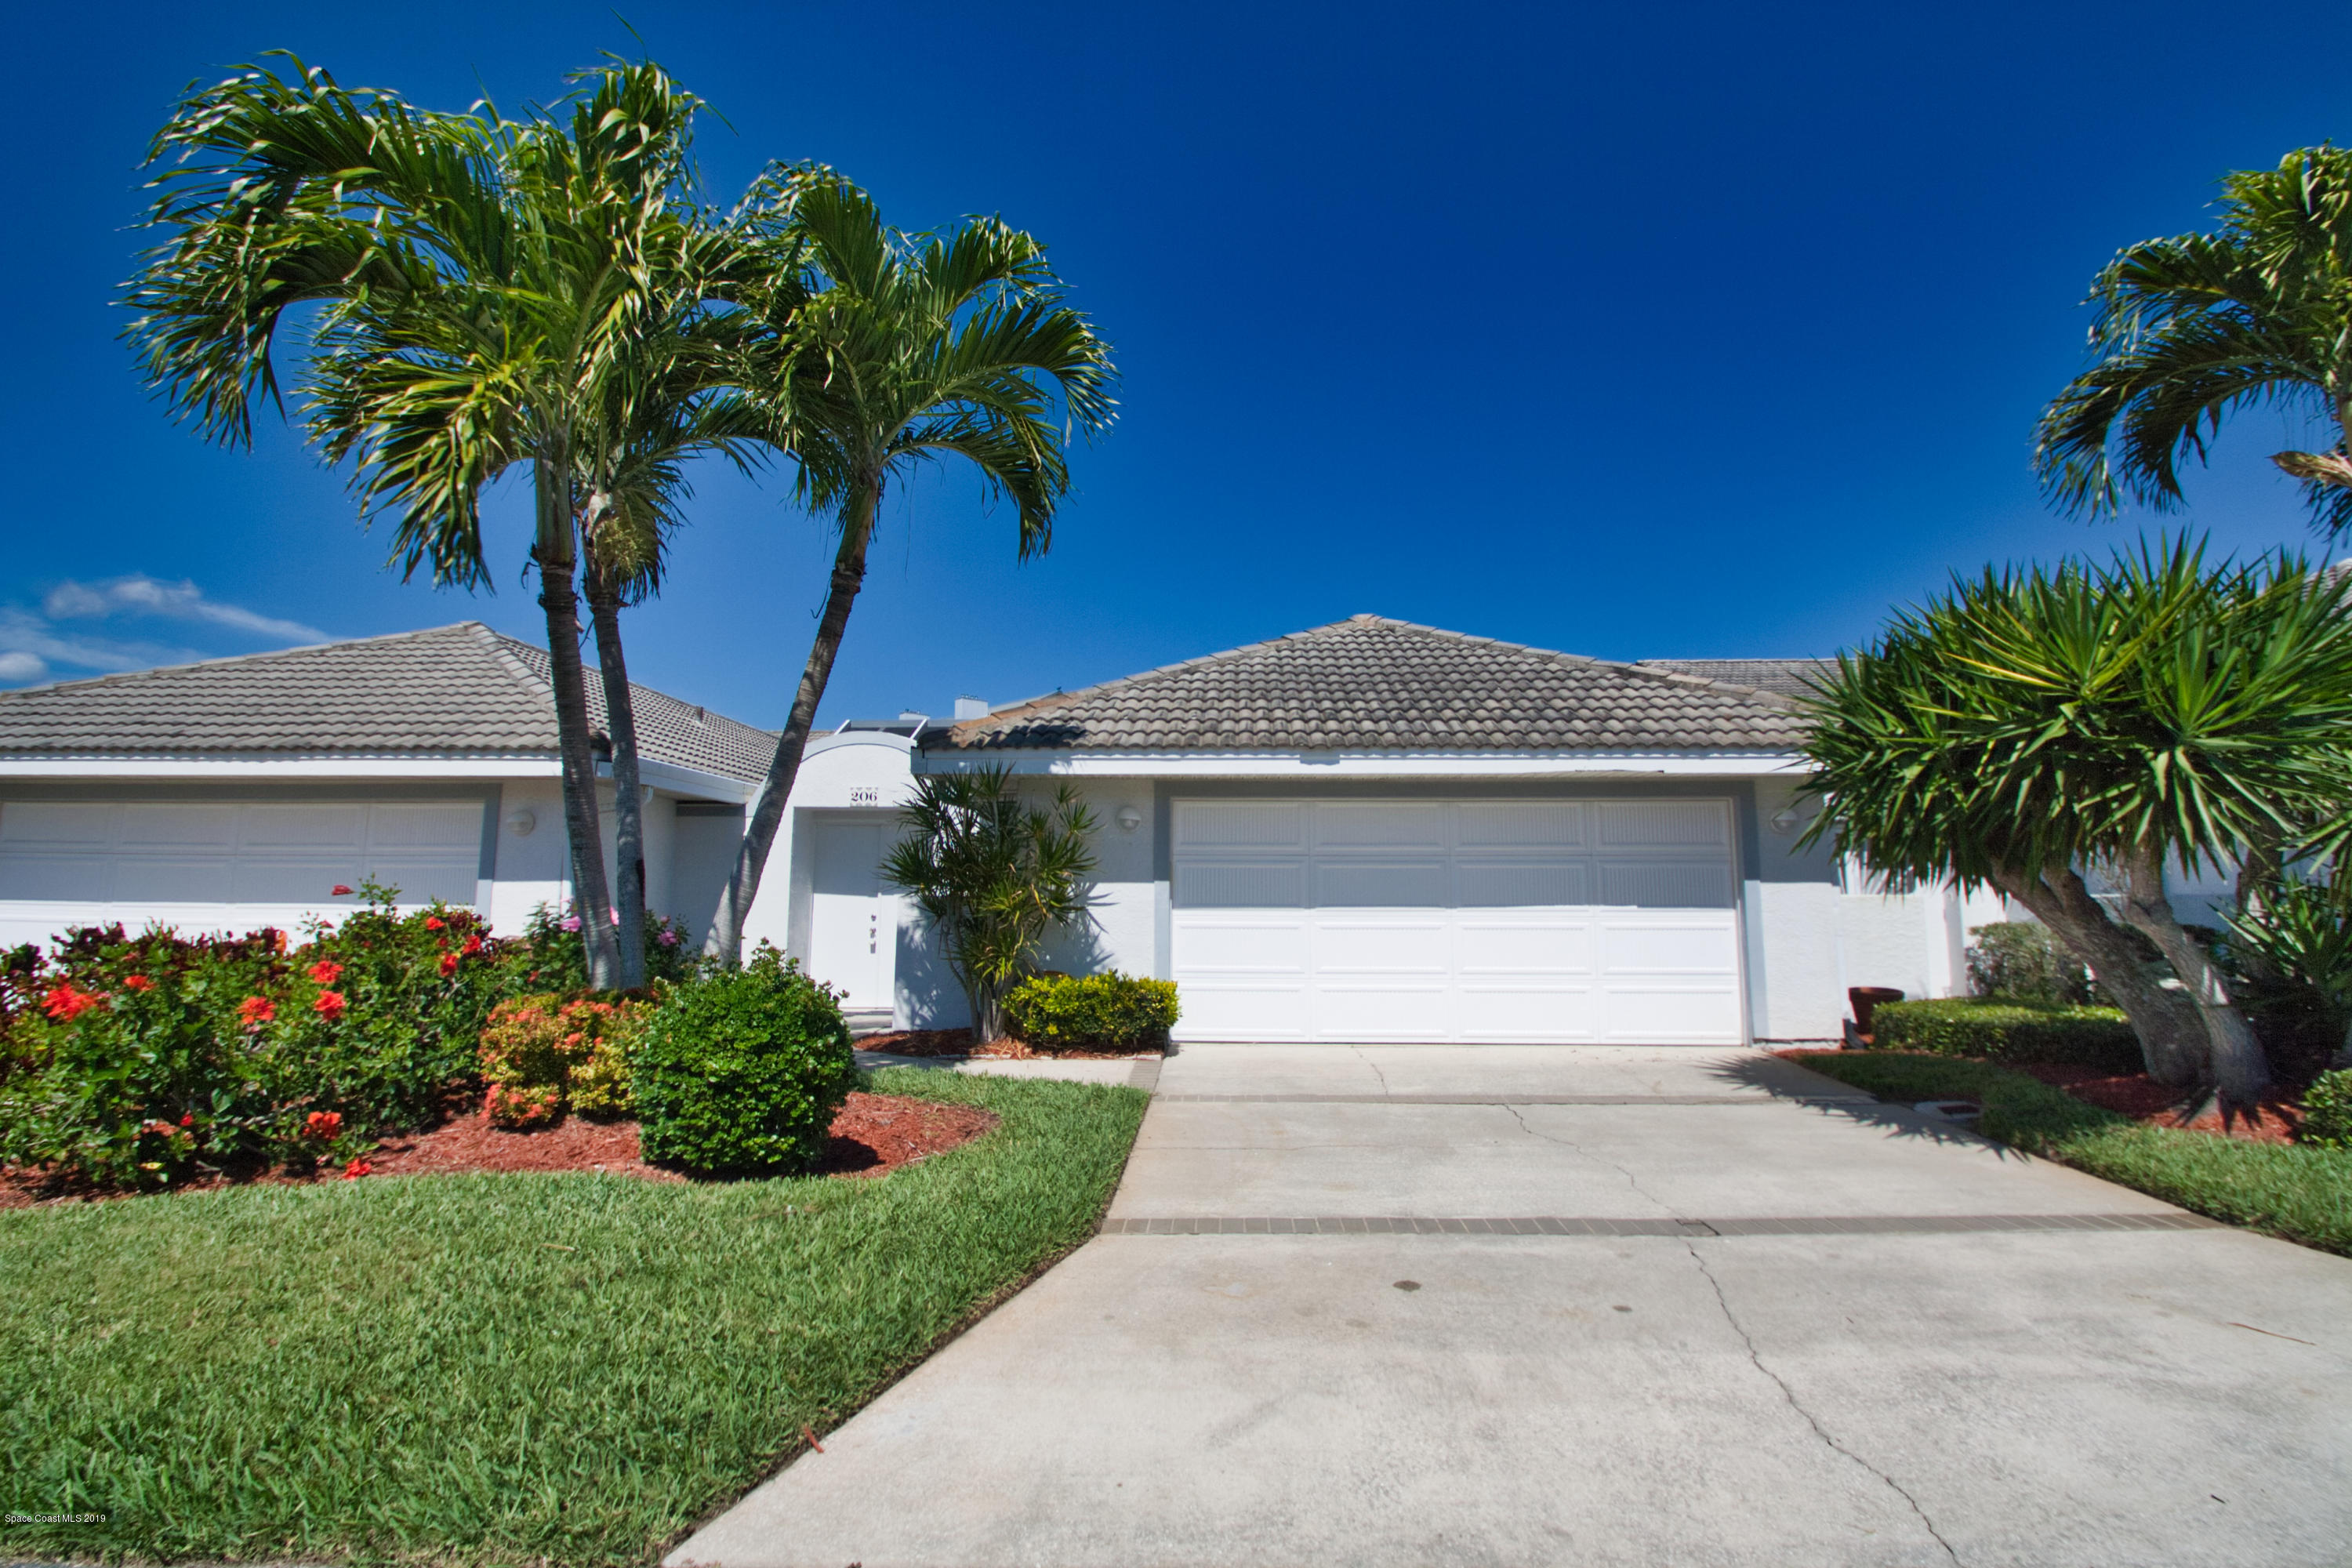 Single Family Home for Sale at 206 Glengarry Melbourne Beach, Florida 32951 United States